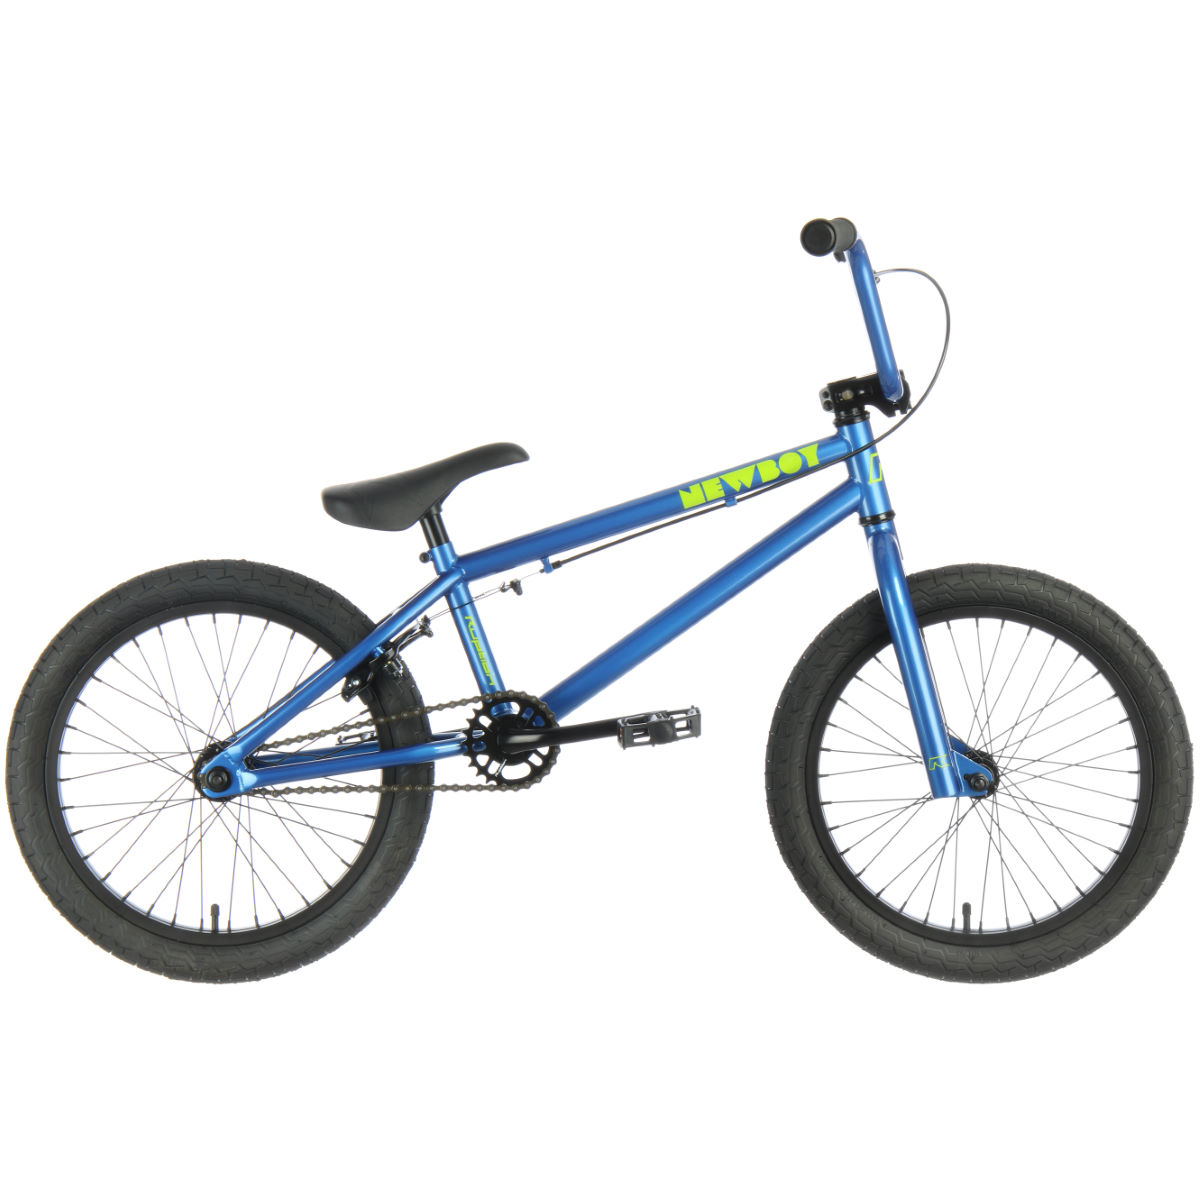 Ruption Newboy BMX Bike (2019) - Bicicletas de BMX Freestyle